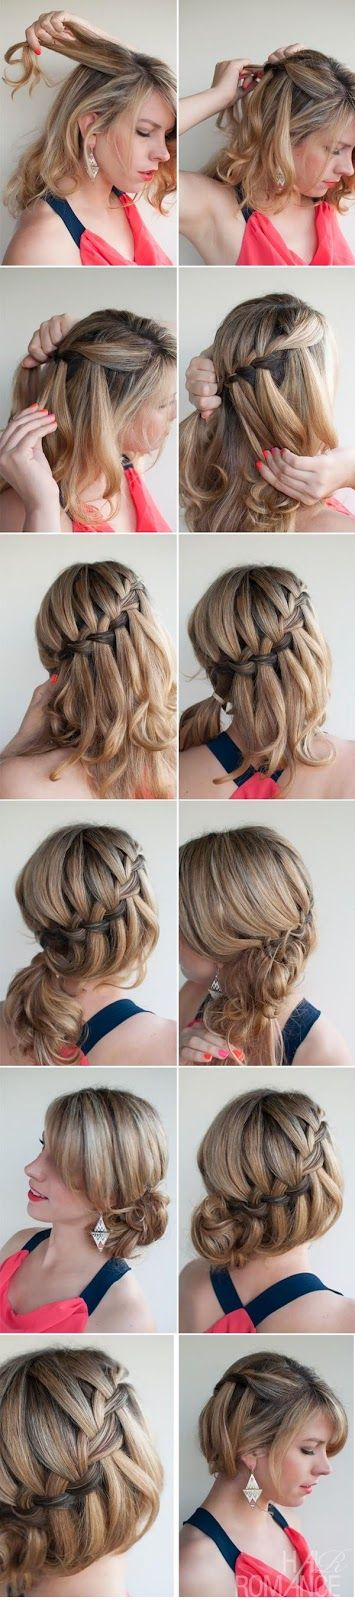 cute hair styles for homecoming 17 best ideas about waterfall braid updo on 9104 | 076d9104ed63f07de559b66fdcd41ff2